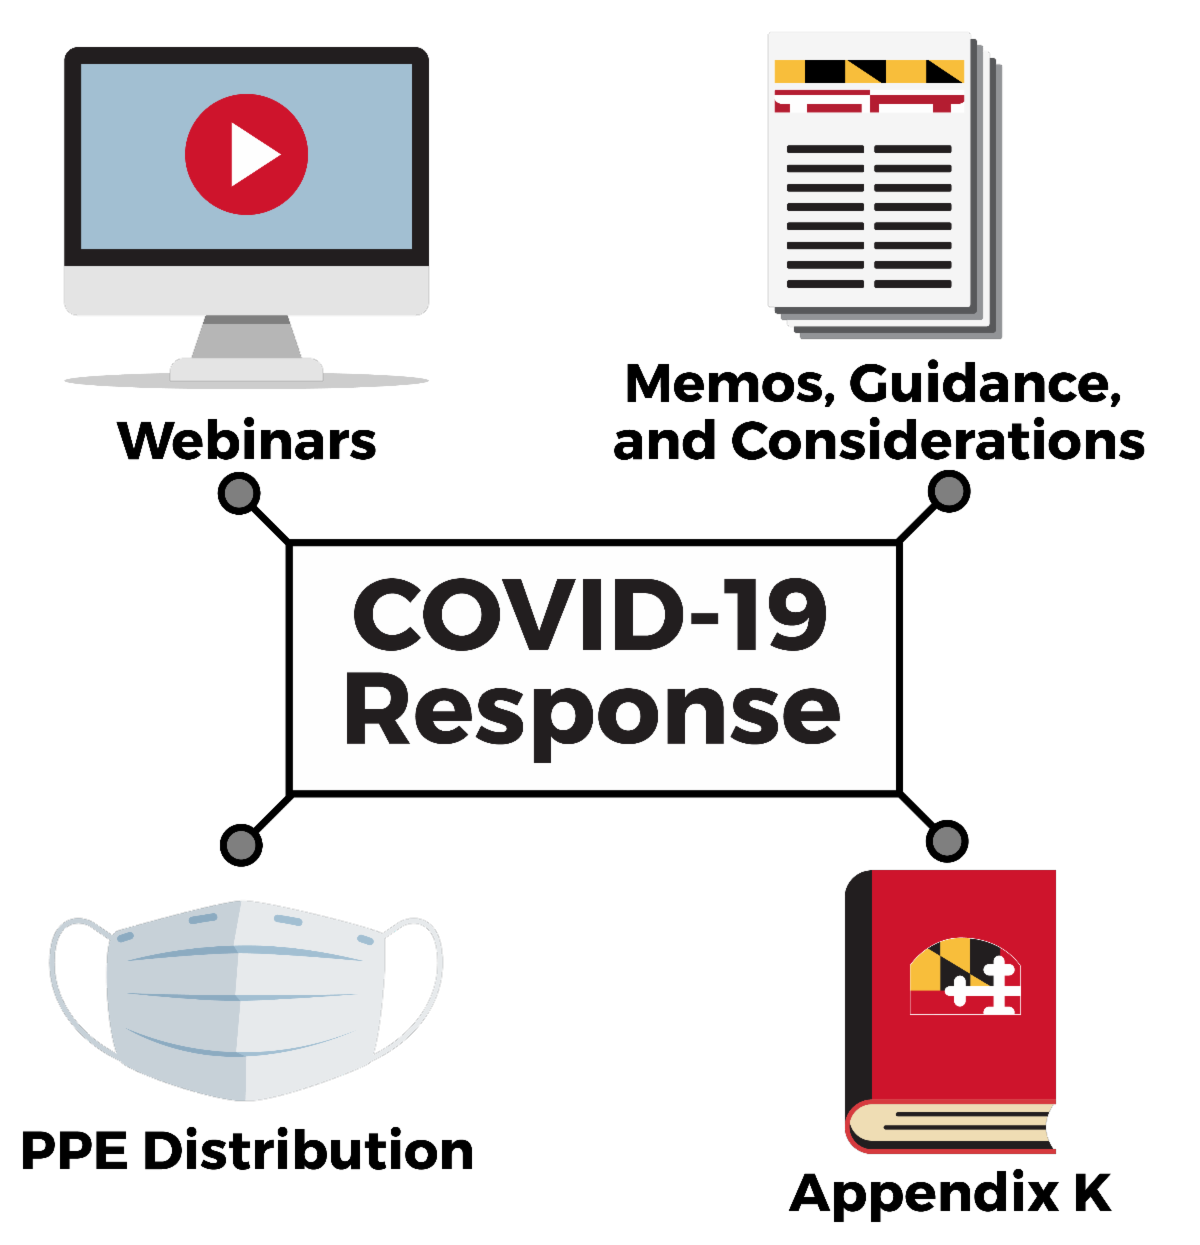 """Graphic representing DDA's COVID-19 response including icons for """"Webinars"""", """"Memos, Guidance and Considerations"""", """"PPE Distribution"""", and """"Appendix K""""."""